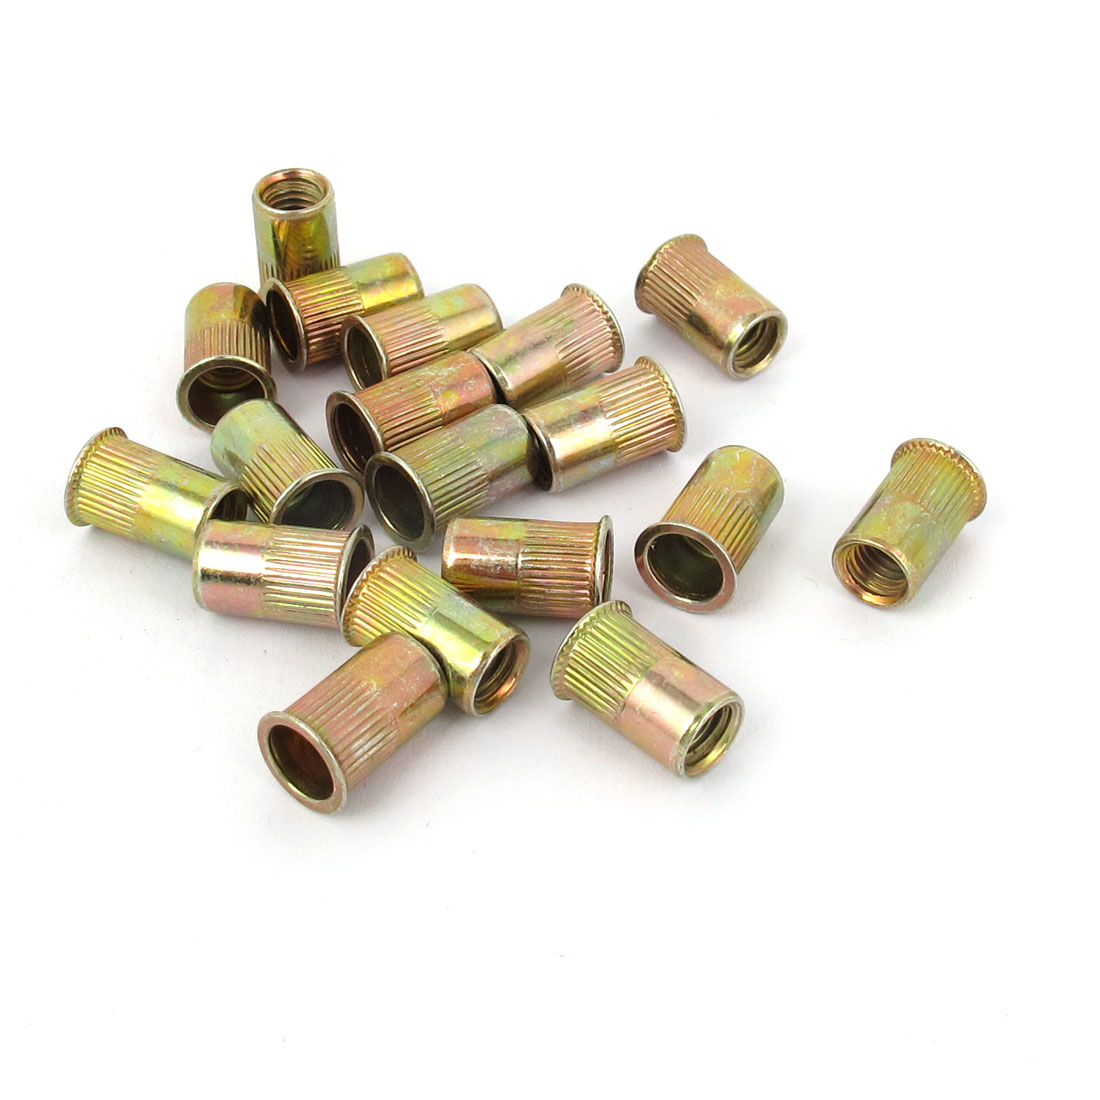 M5x12mm Metric Zinc Plated Flat Head Blind Rivet Nut Insert Nutsert 20pcs